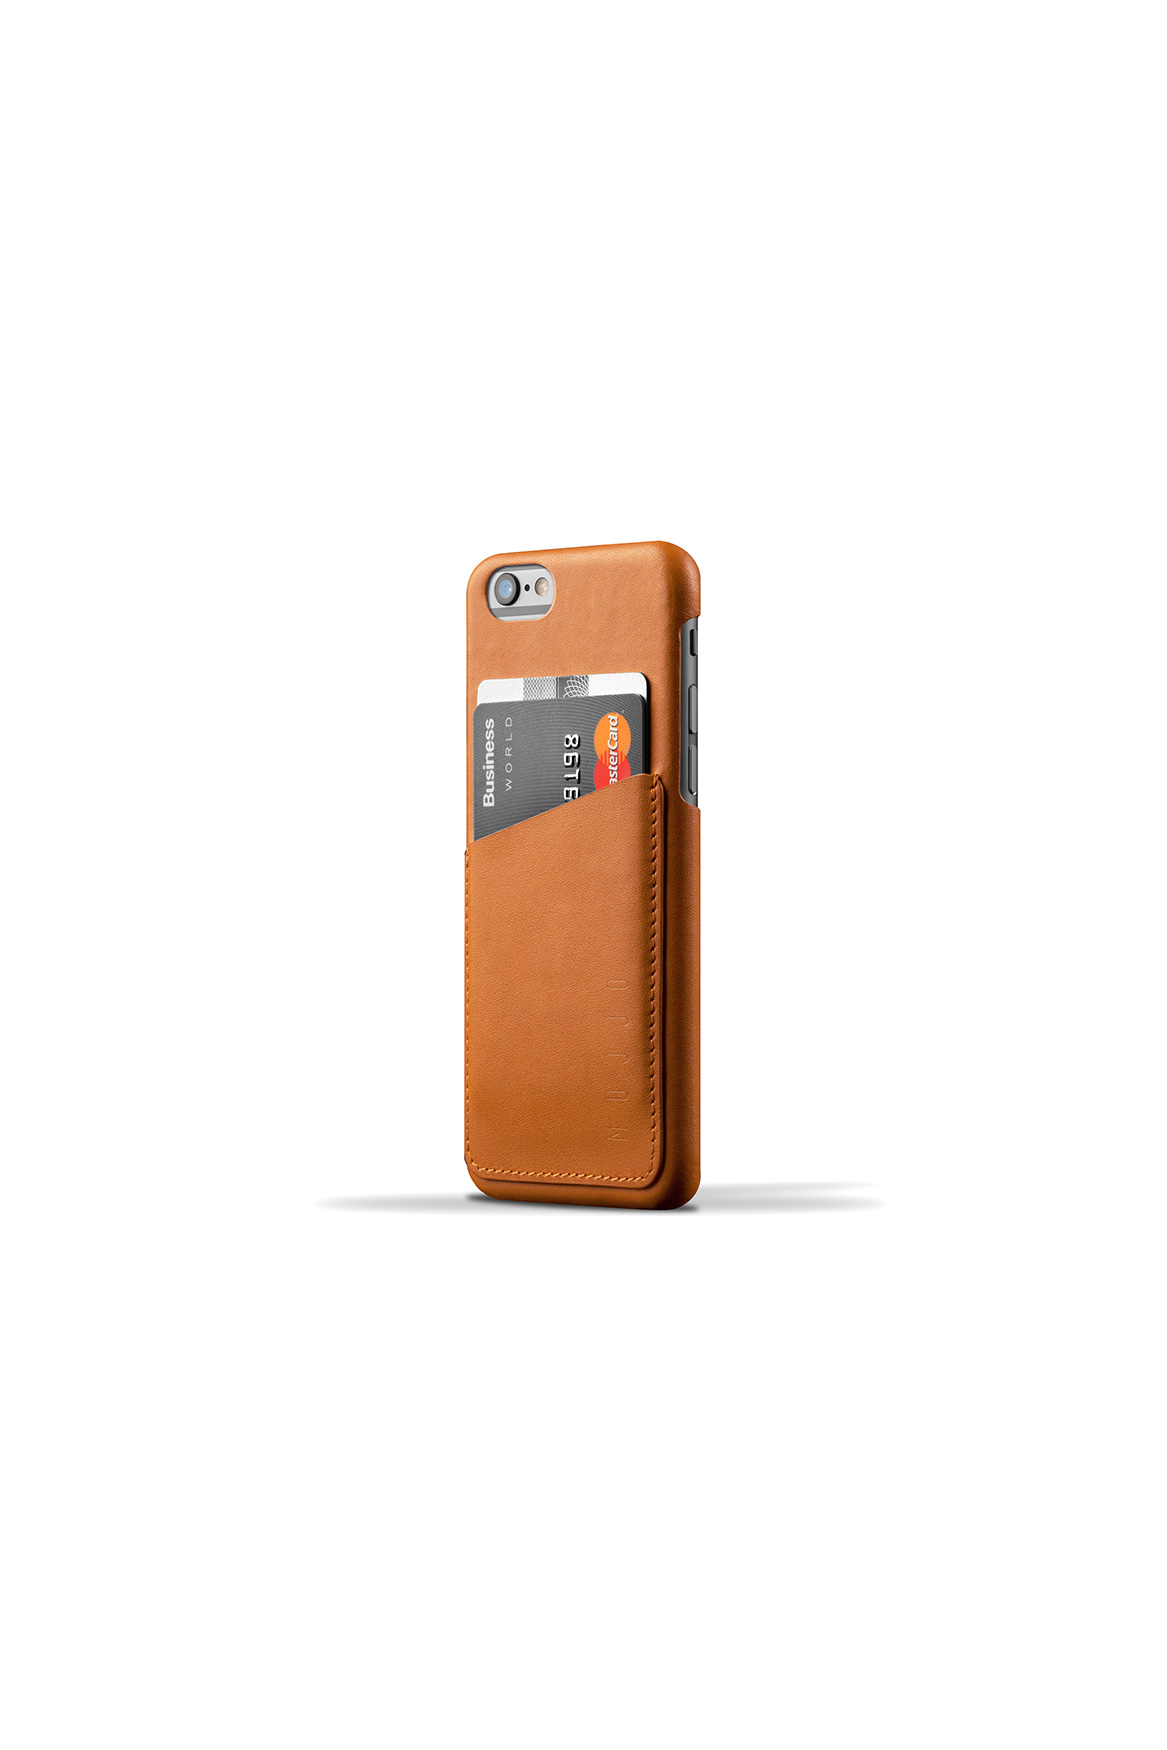 Leather-Wallet-Case-for-iPhone-6-Tan-003